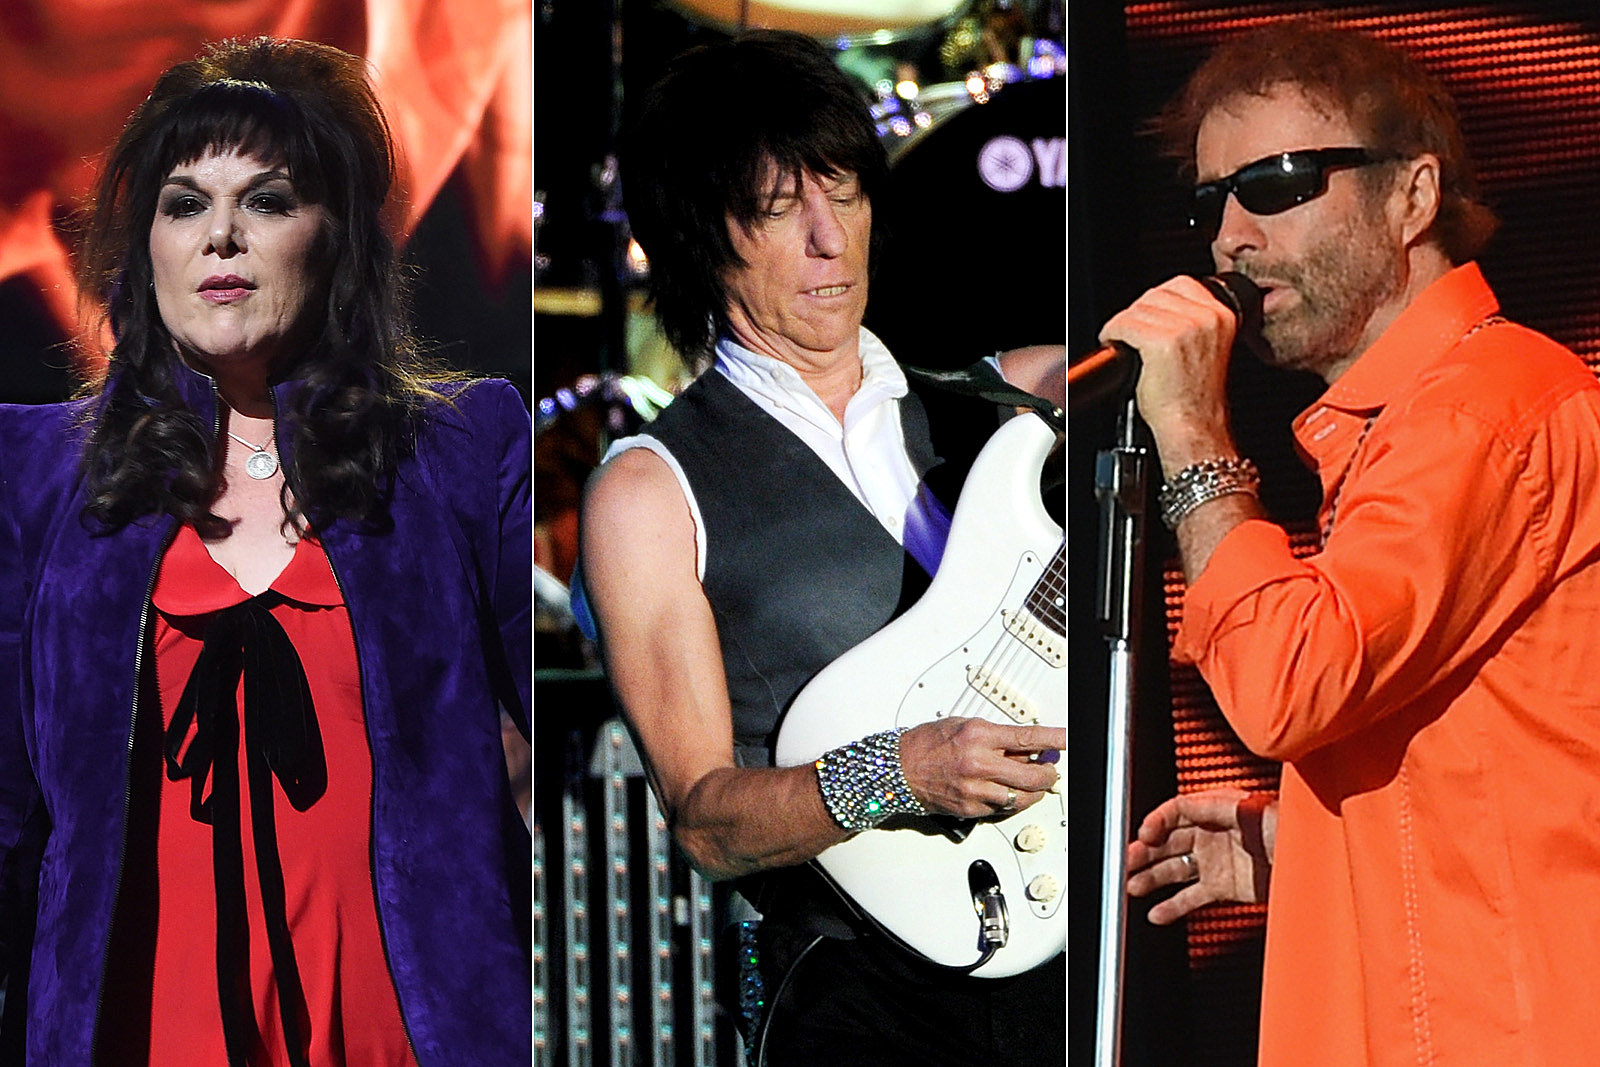 Jeff Beck, Paul Rodgers and Ann Willson Kick Off 'Stars Align' Tour: Set Lists and Videos